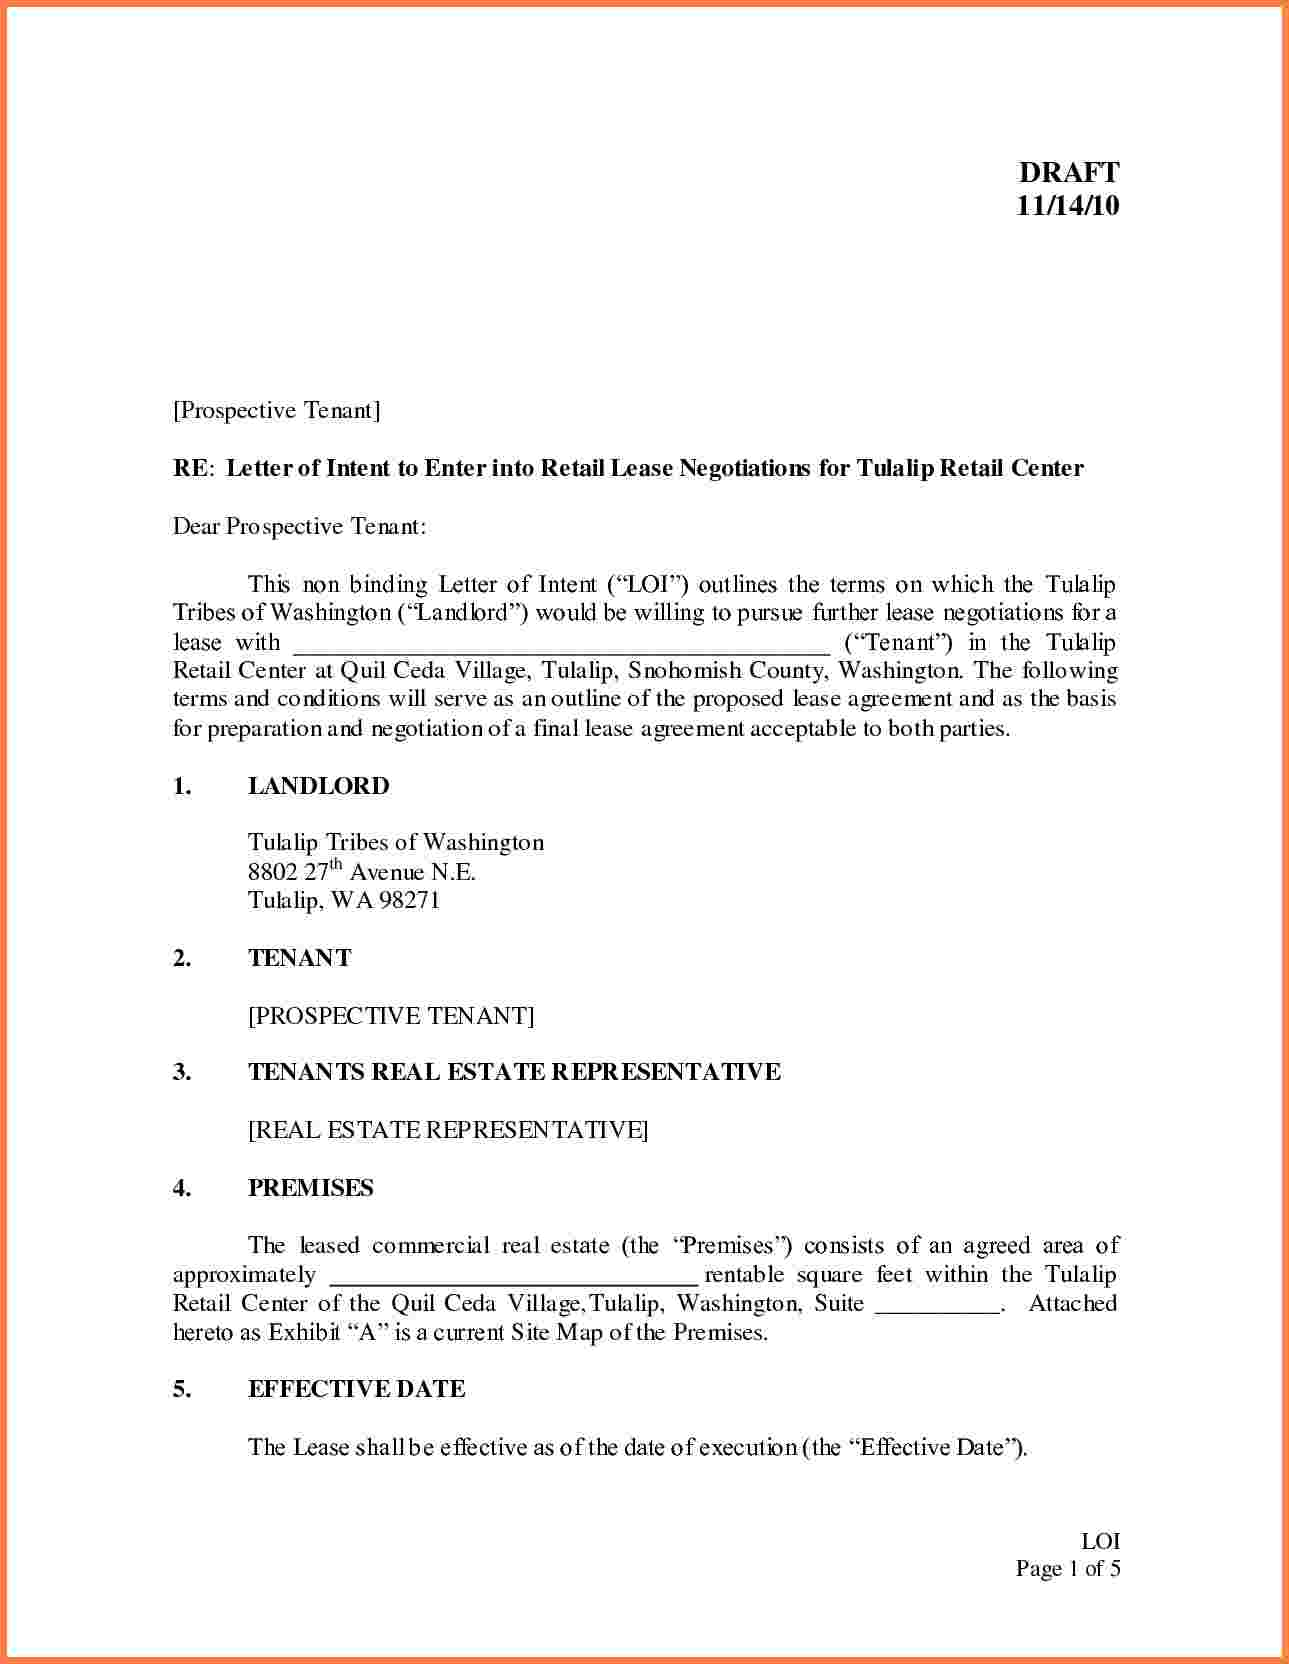 Commercial real estate lease agreement template myexampleinc.